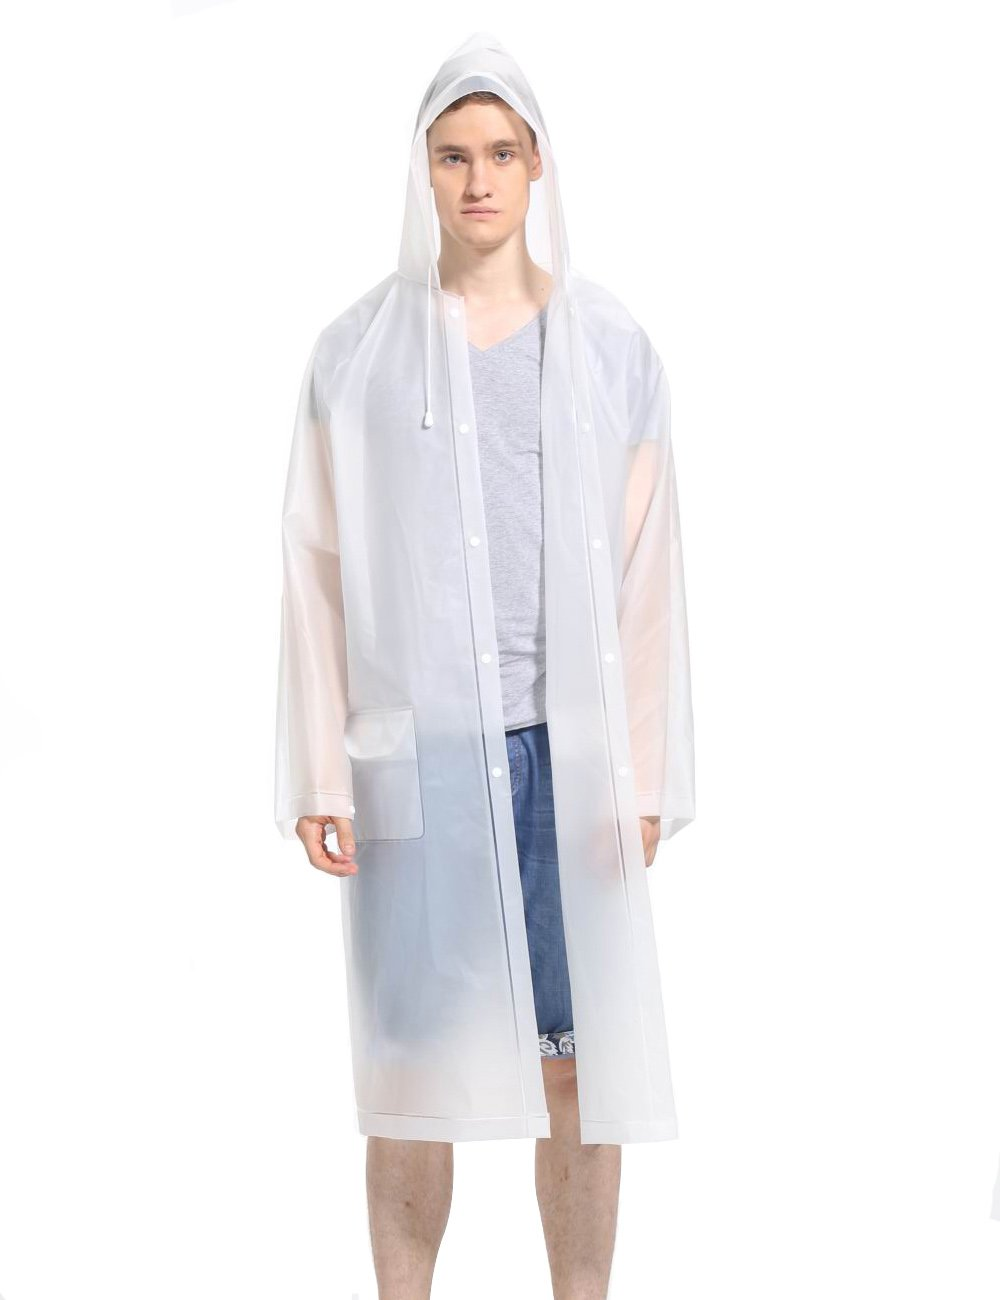 LOHASCASA Adults Men's and Big Boy's Clear Transparent Waterproof Raincoat Packable Lightweight Hooded Breathable Rain Coats Travel White X-Large